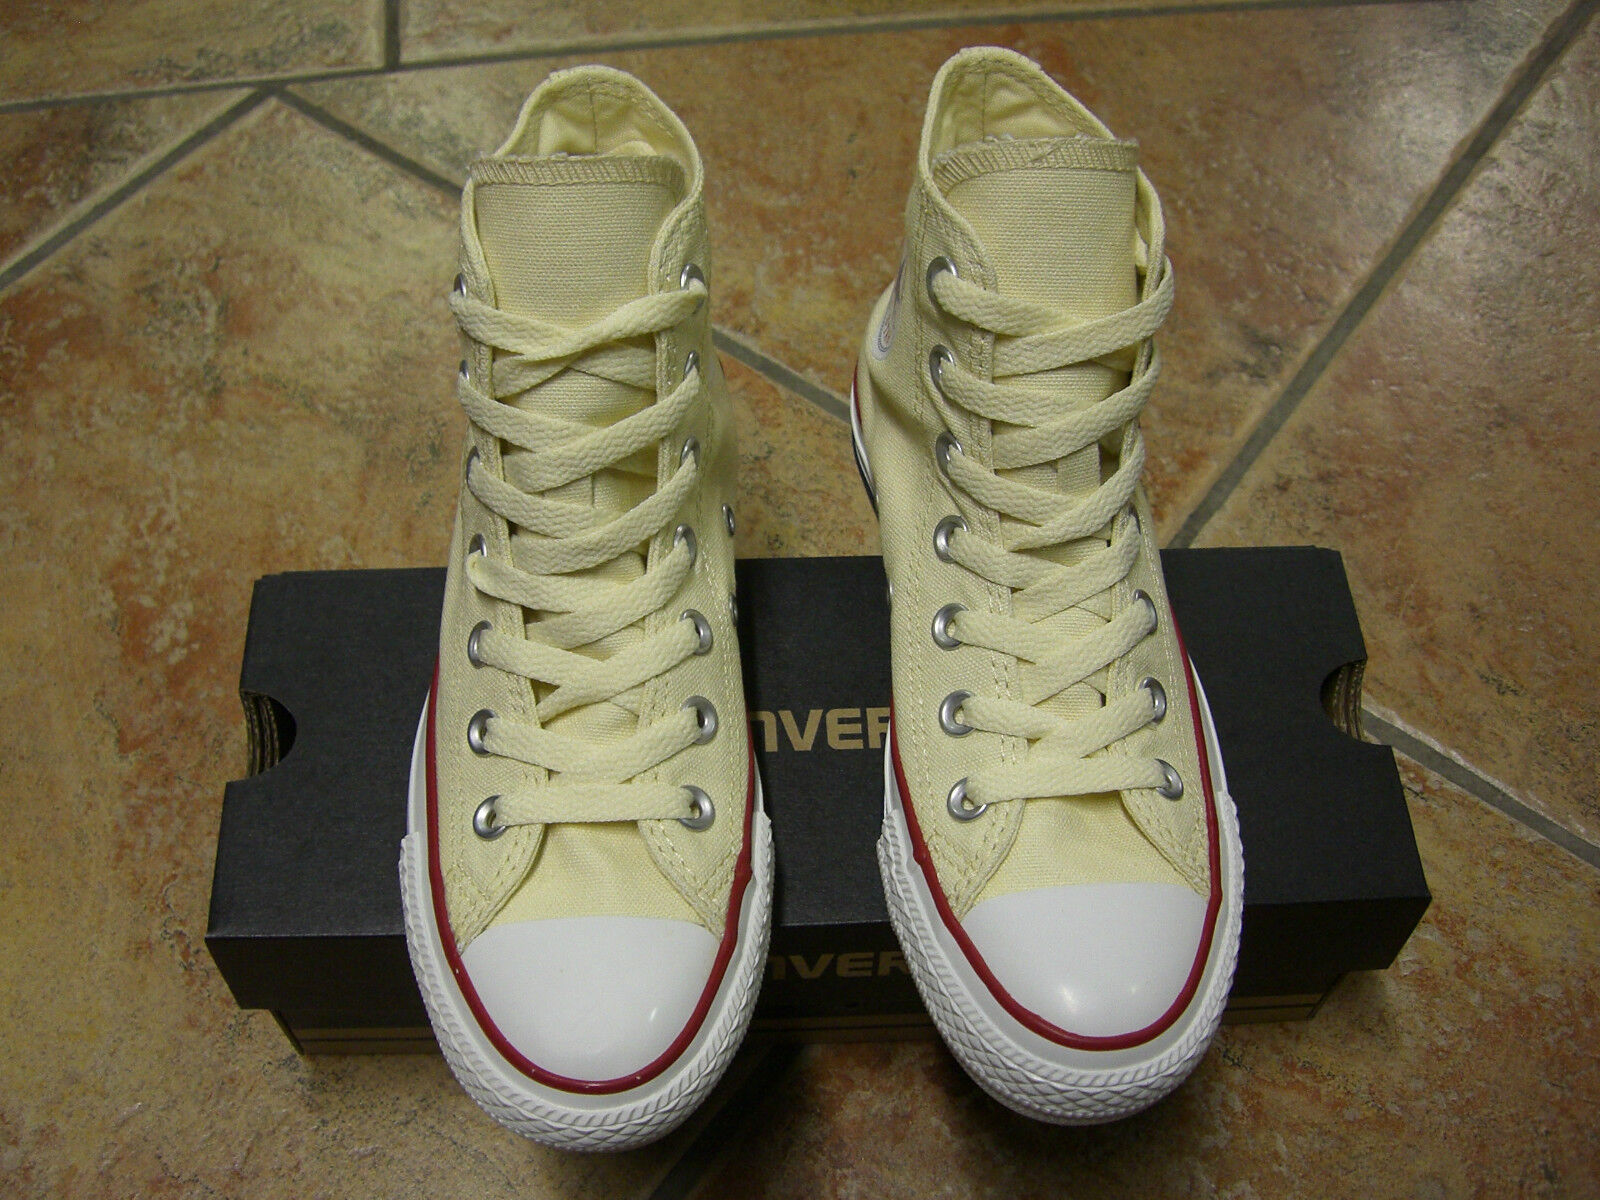 Converse Chucks All Star HI Gr.46,5 WHITE WEISS  M 9162 NEU TRENDY TOP